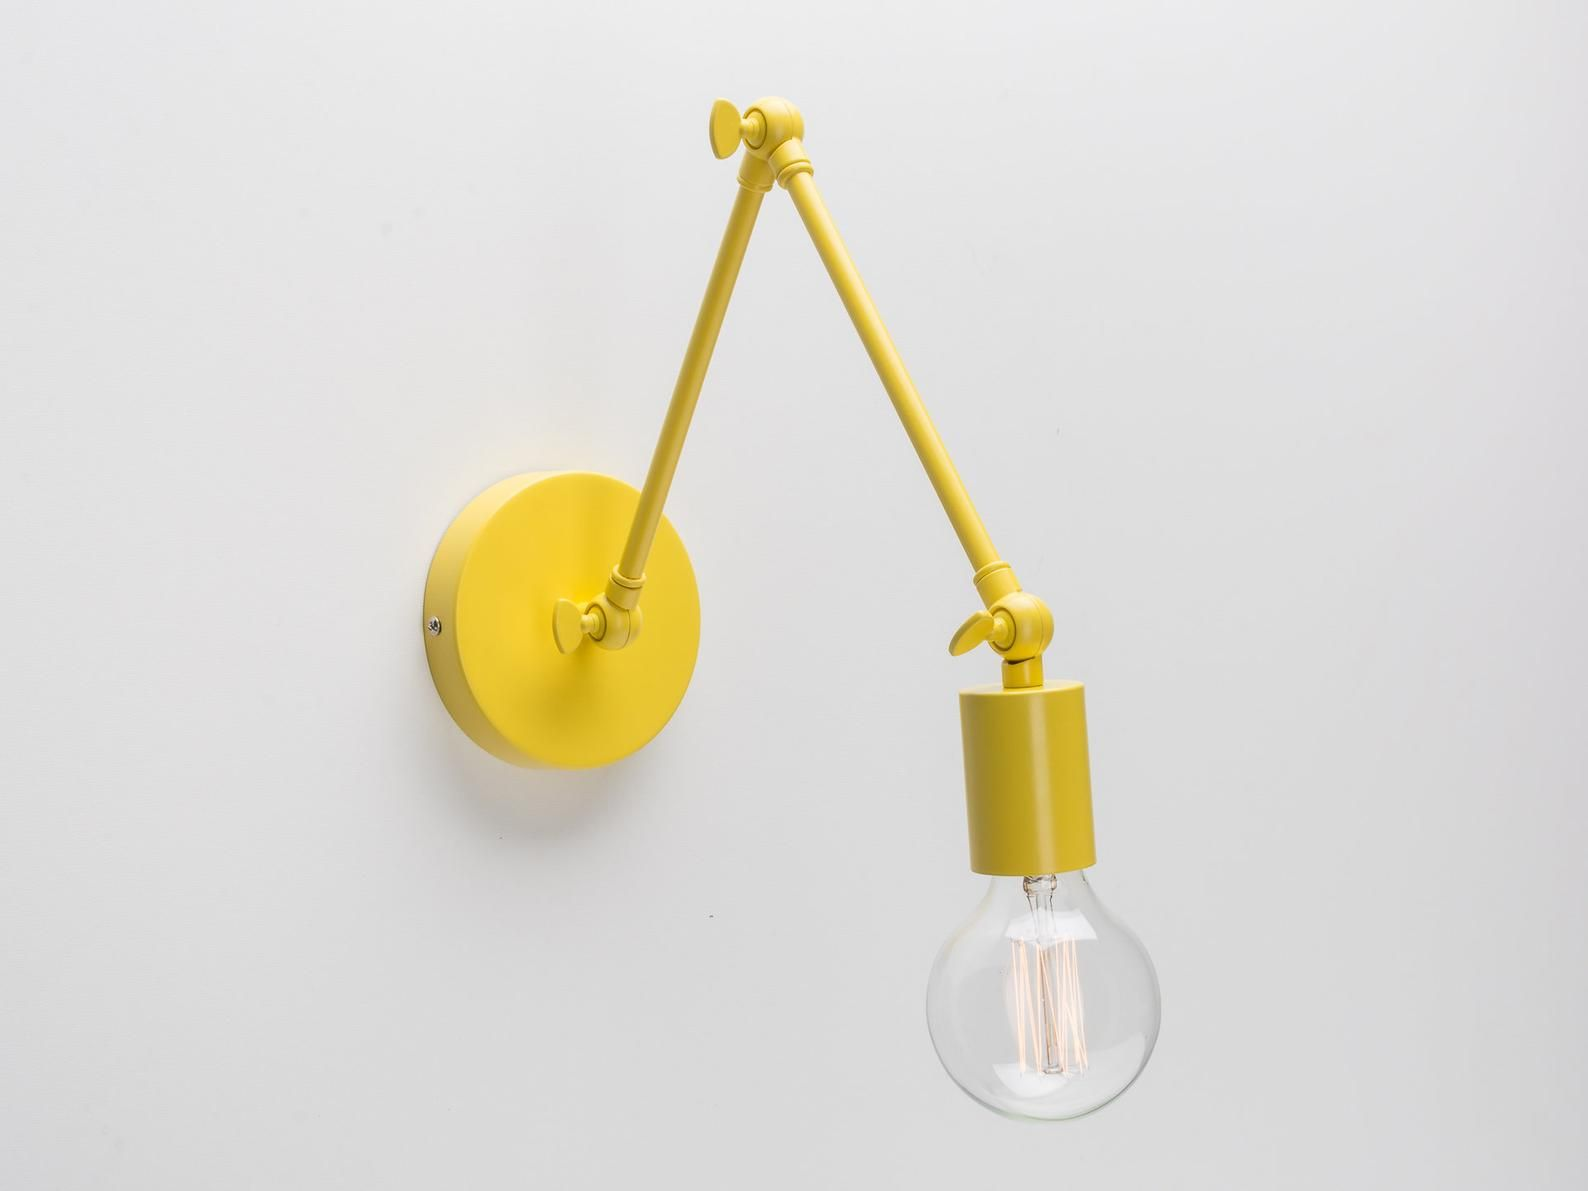 Permo 1 Light Plug In On Off Switch Wall Sconce With Funnel Flared Clear Glass Shade Vintage Industrial Wall Lamp Lig Industrial Wall Lamp Wall Lamp Lamp Light